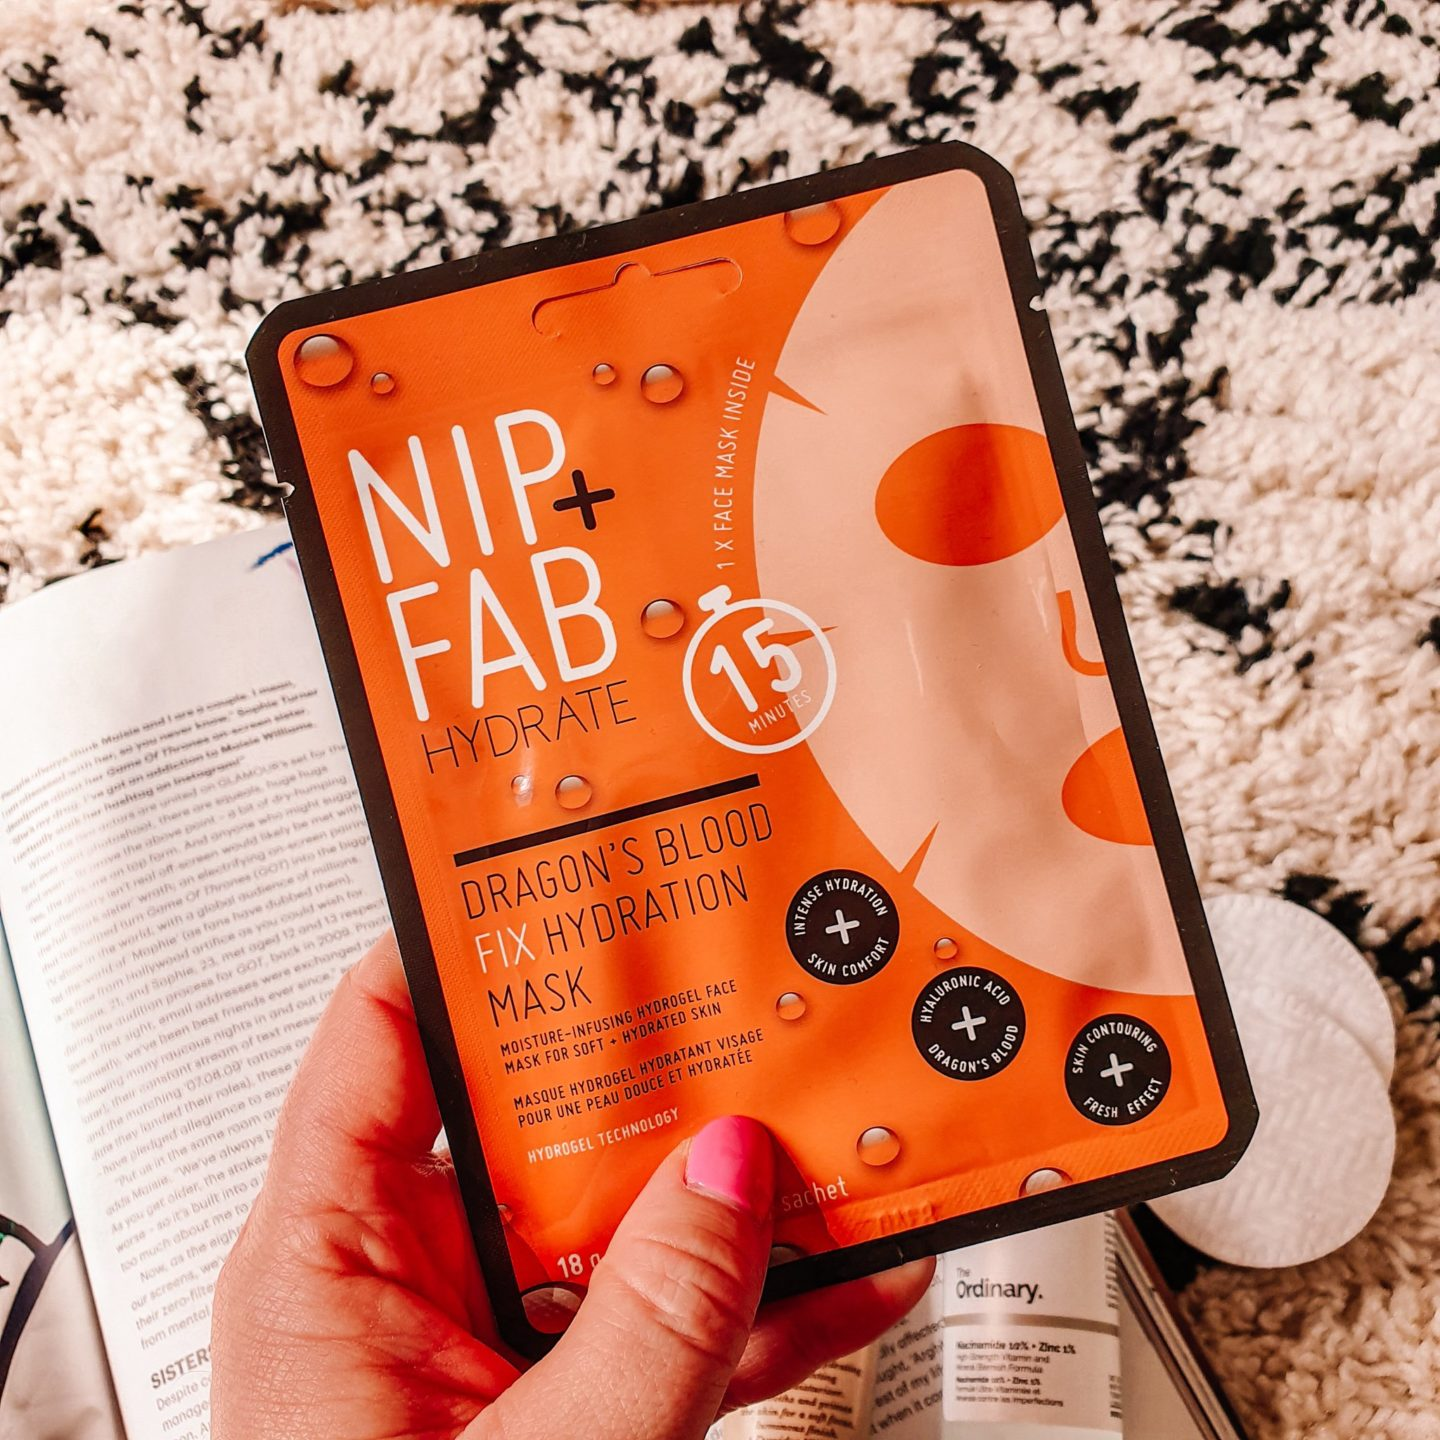 Nip + Fab Dragon's Blood Fix Hydration Mask